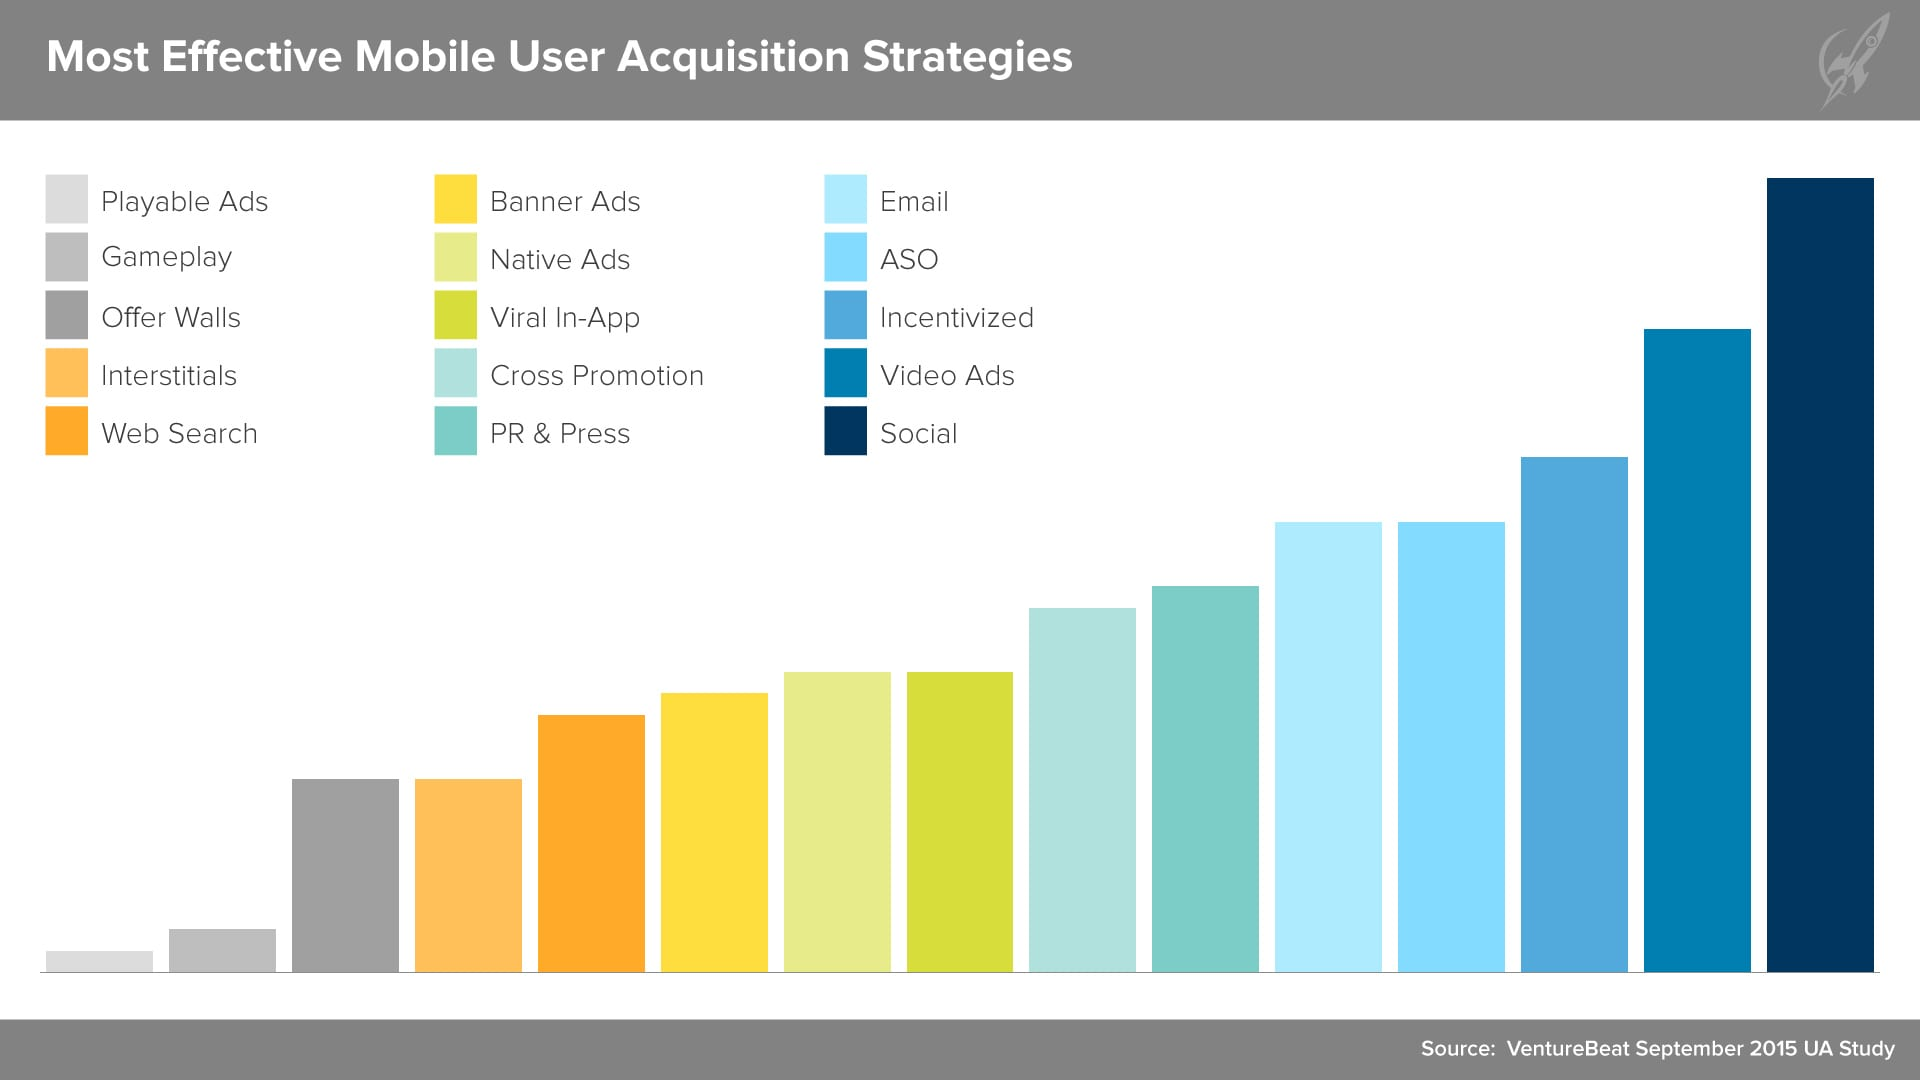 700+ Mobile Developers Sound off on User Acquisition - AdColony